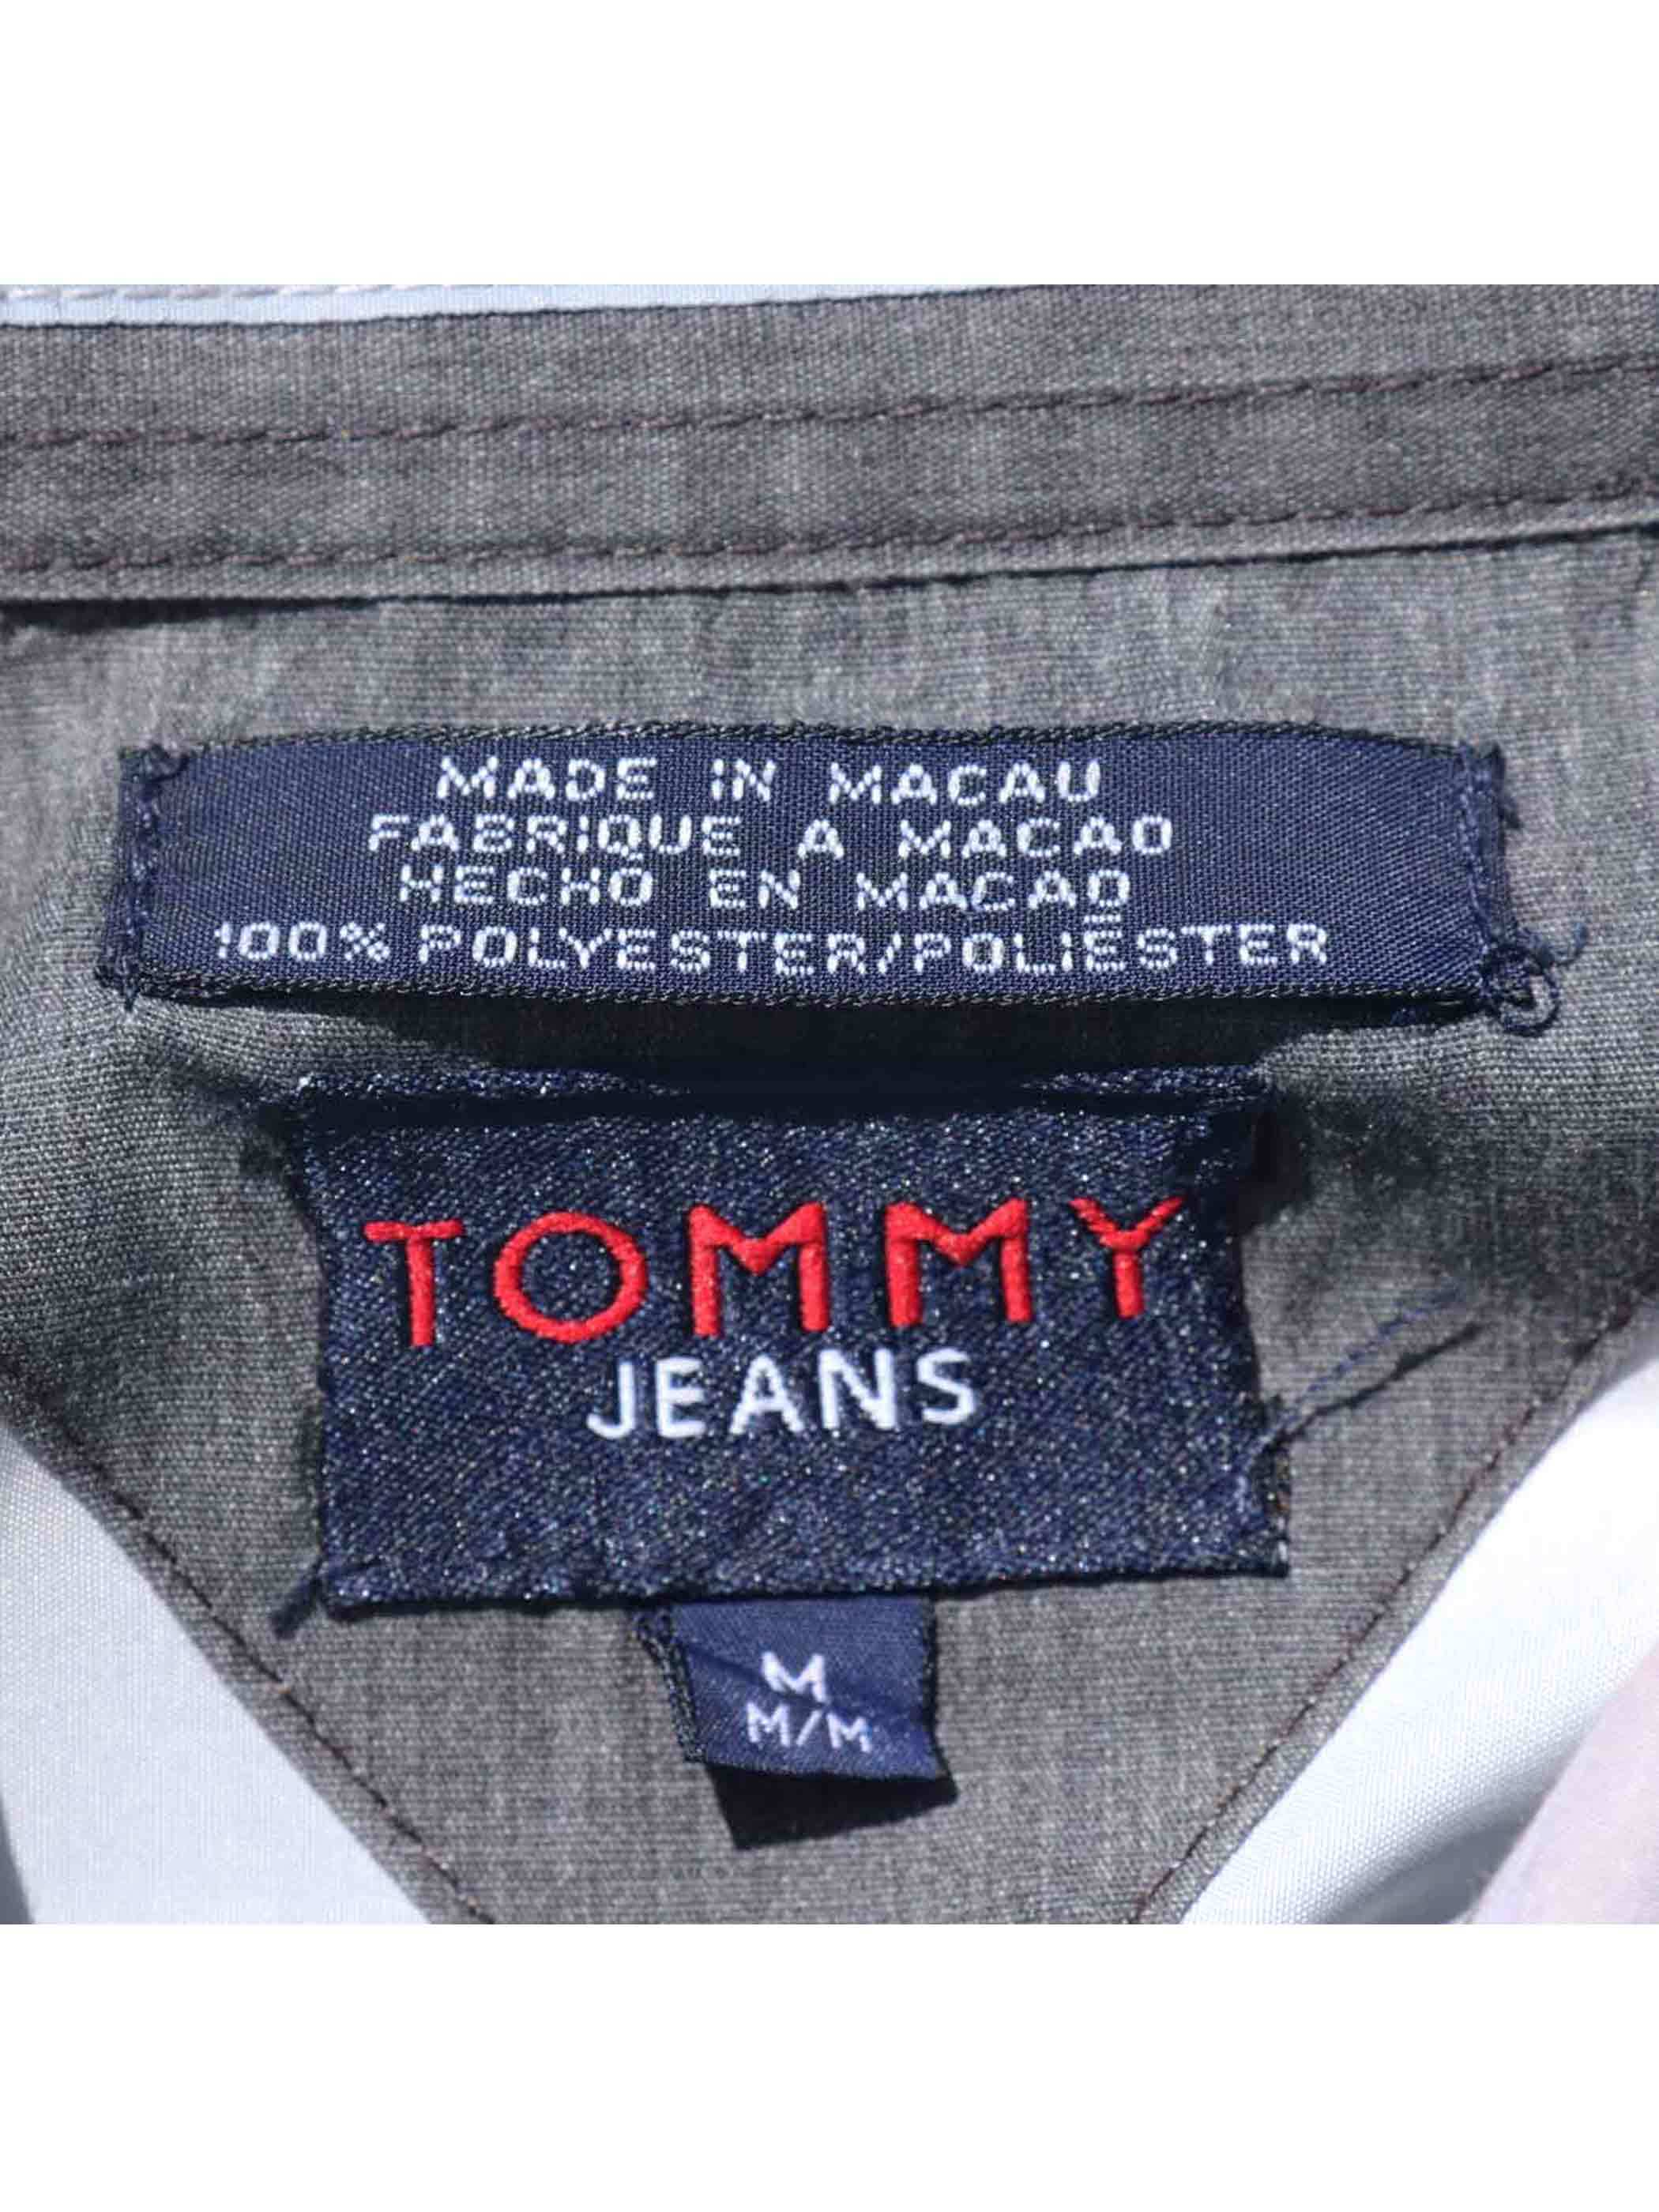 00's TOMMY JEANS 総柄転写プリント L/Sシャツ [M]